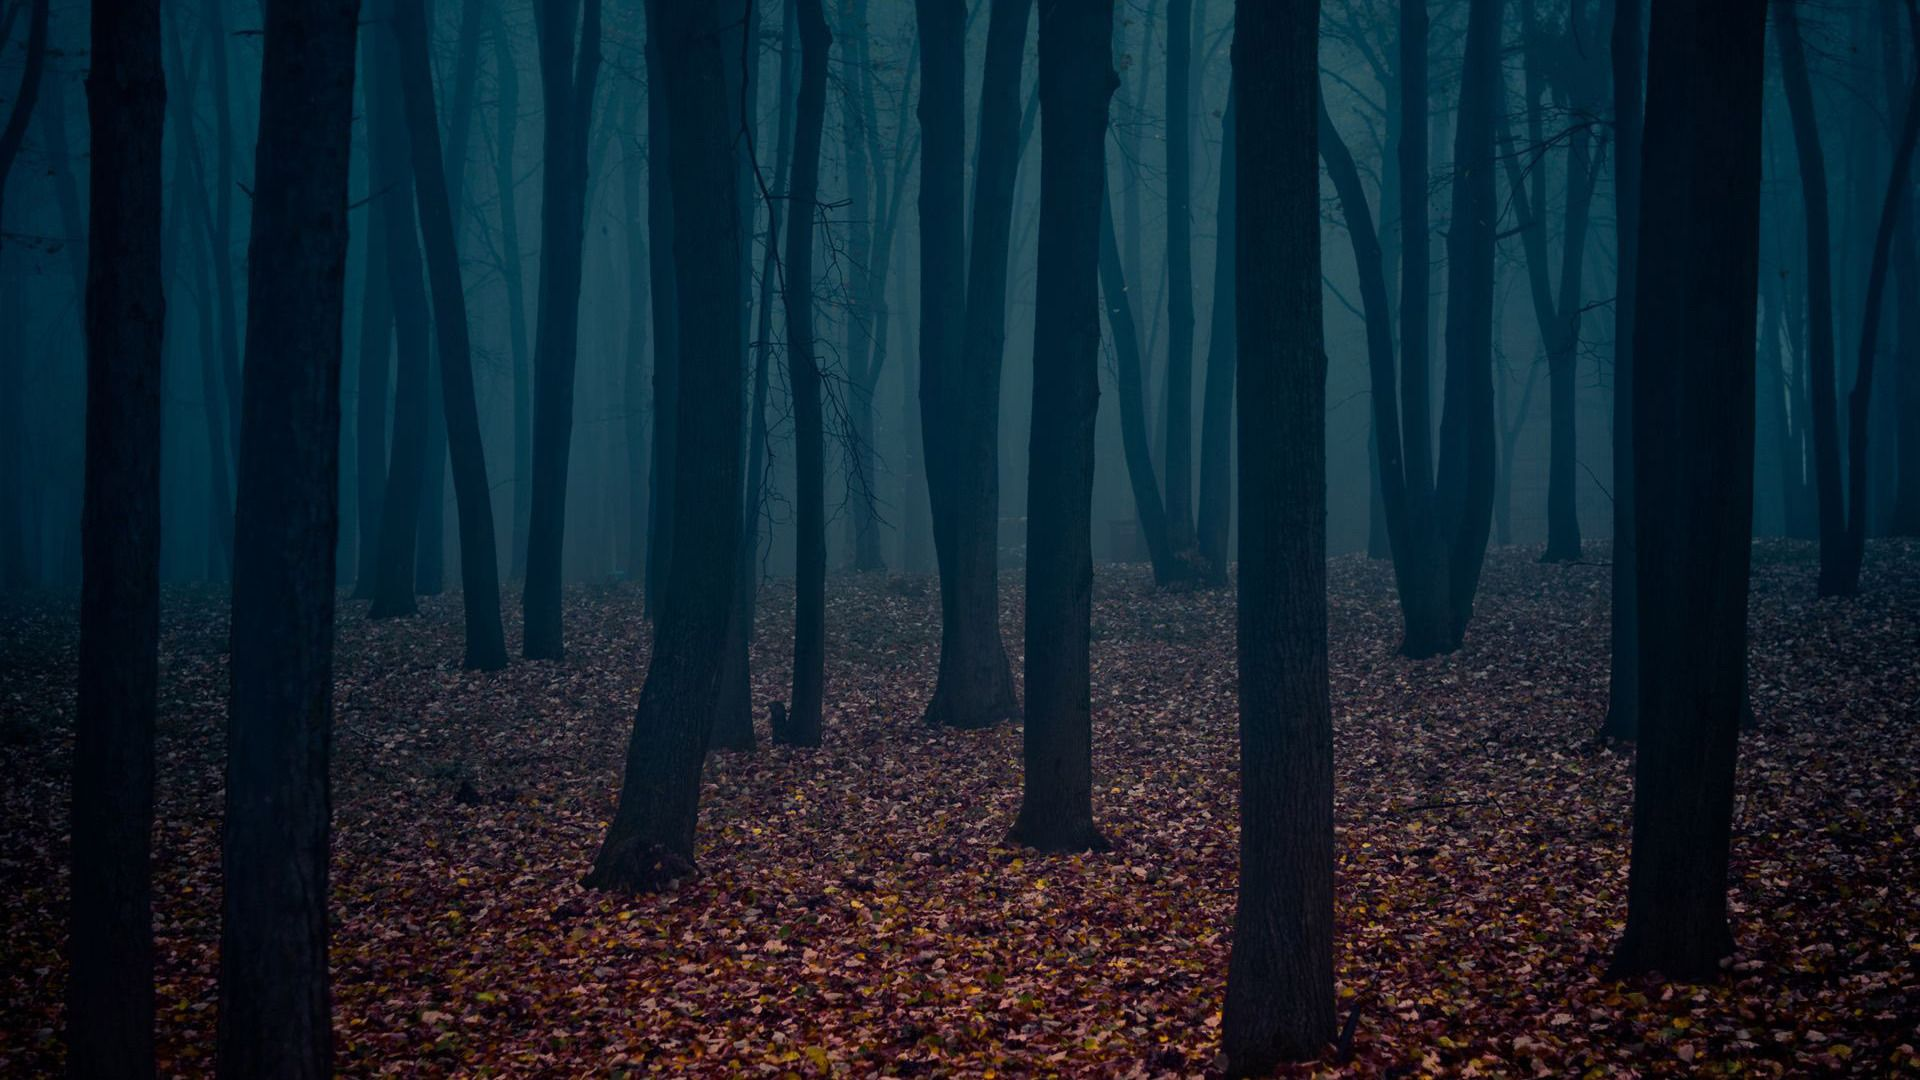 cool forest backgrounds. vd8ldiljpg 19201200 paisagens pinterest dark forest wallpaper and backgrounds cool